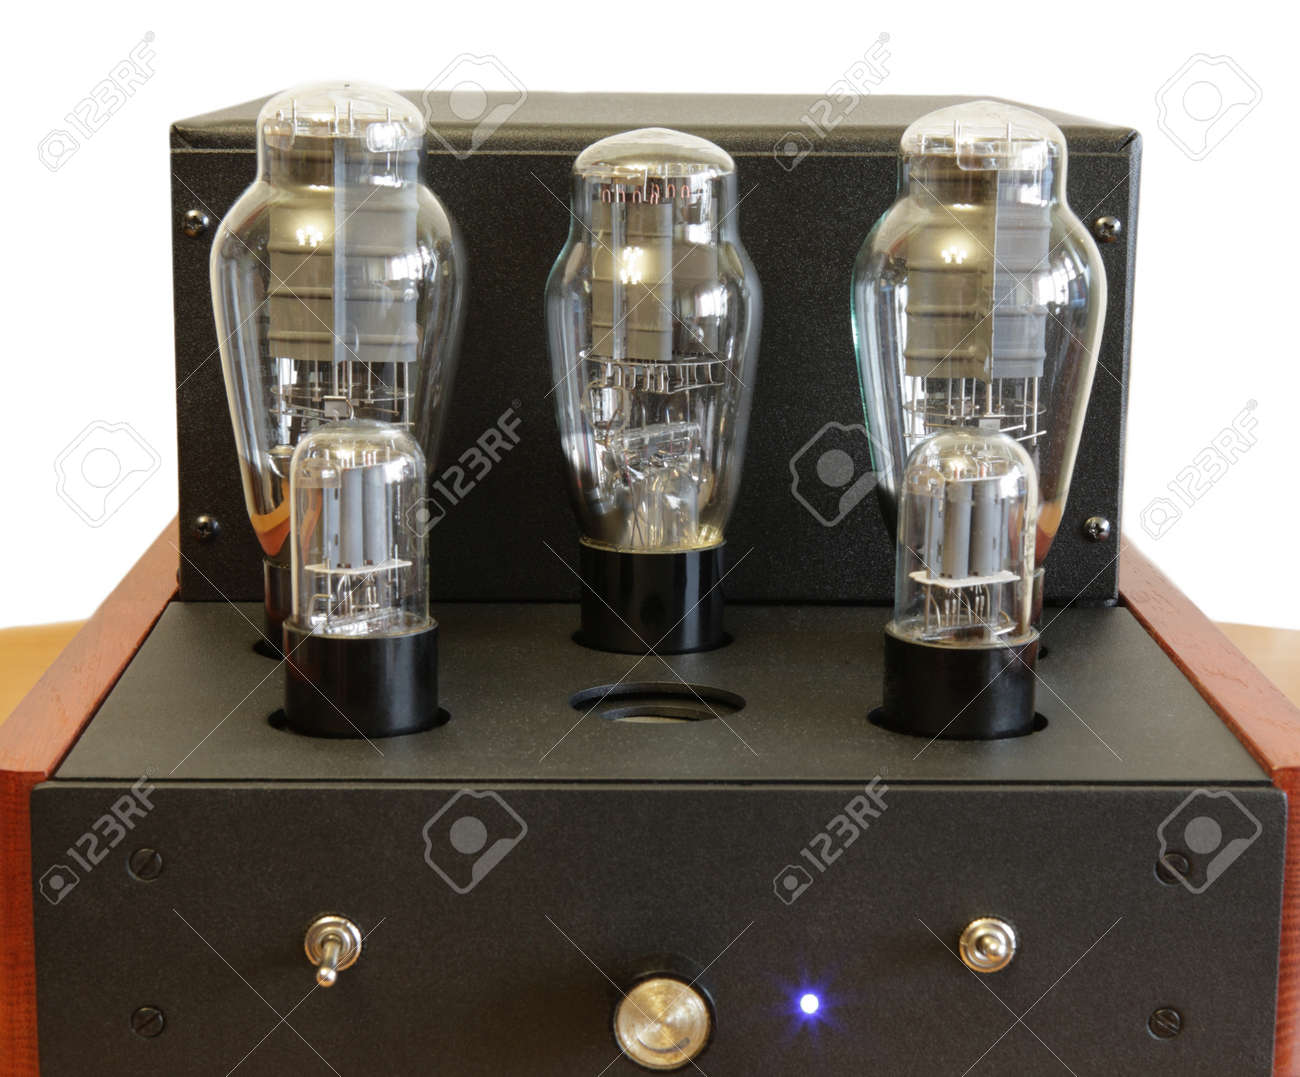 vacuum tube amplifier with 300B triodes